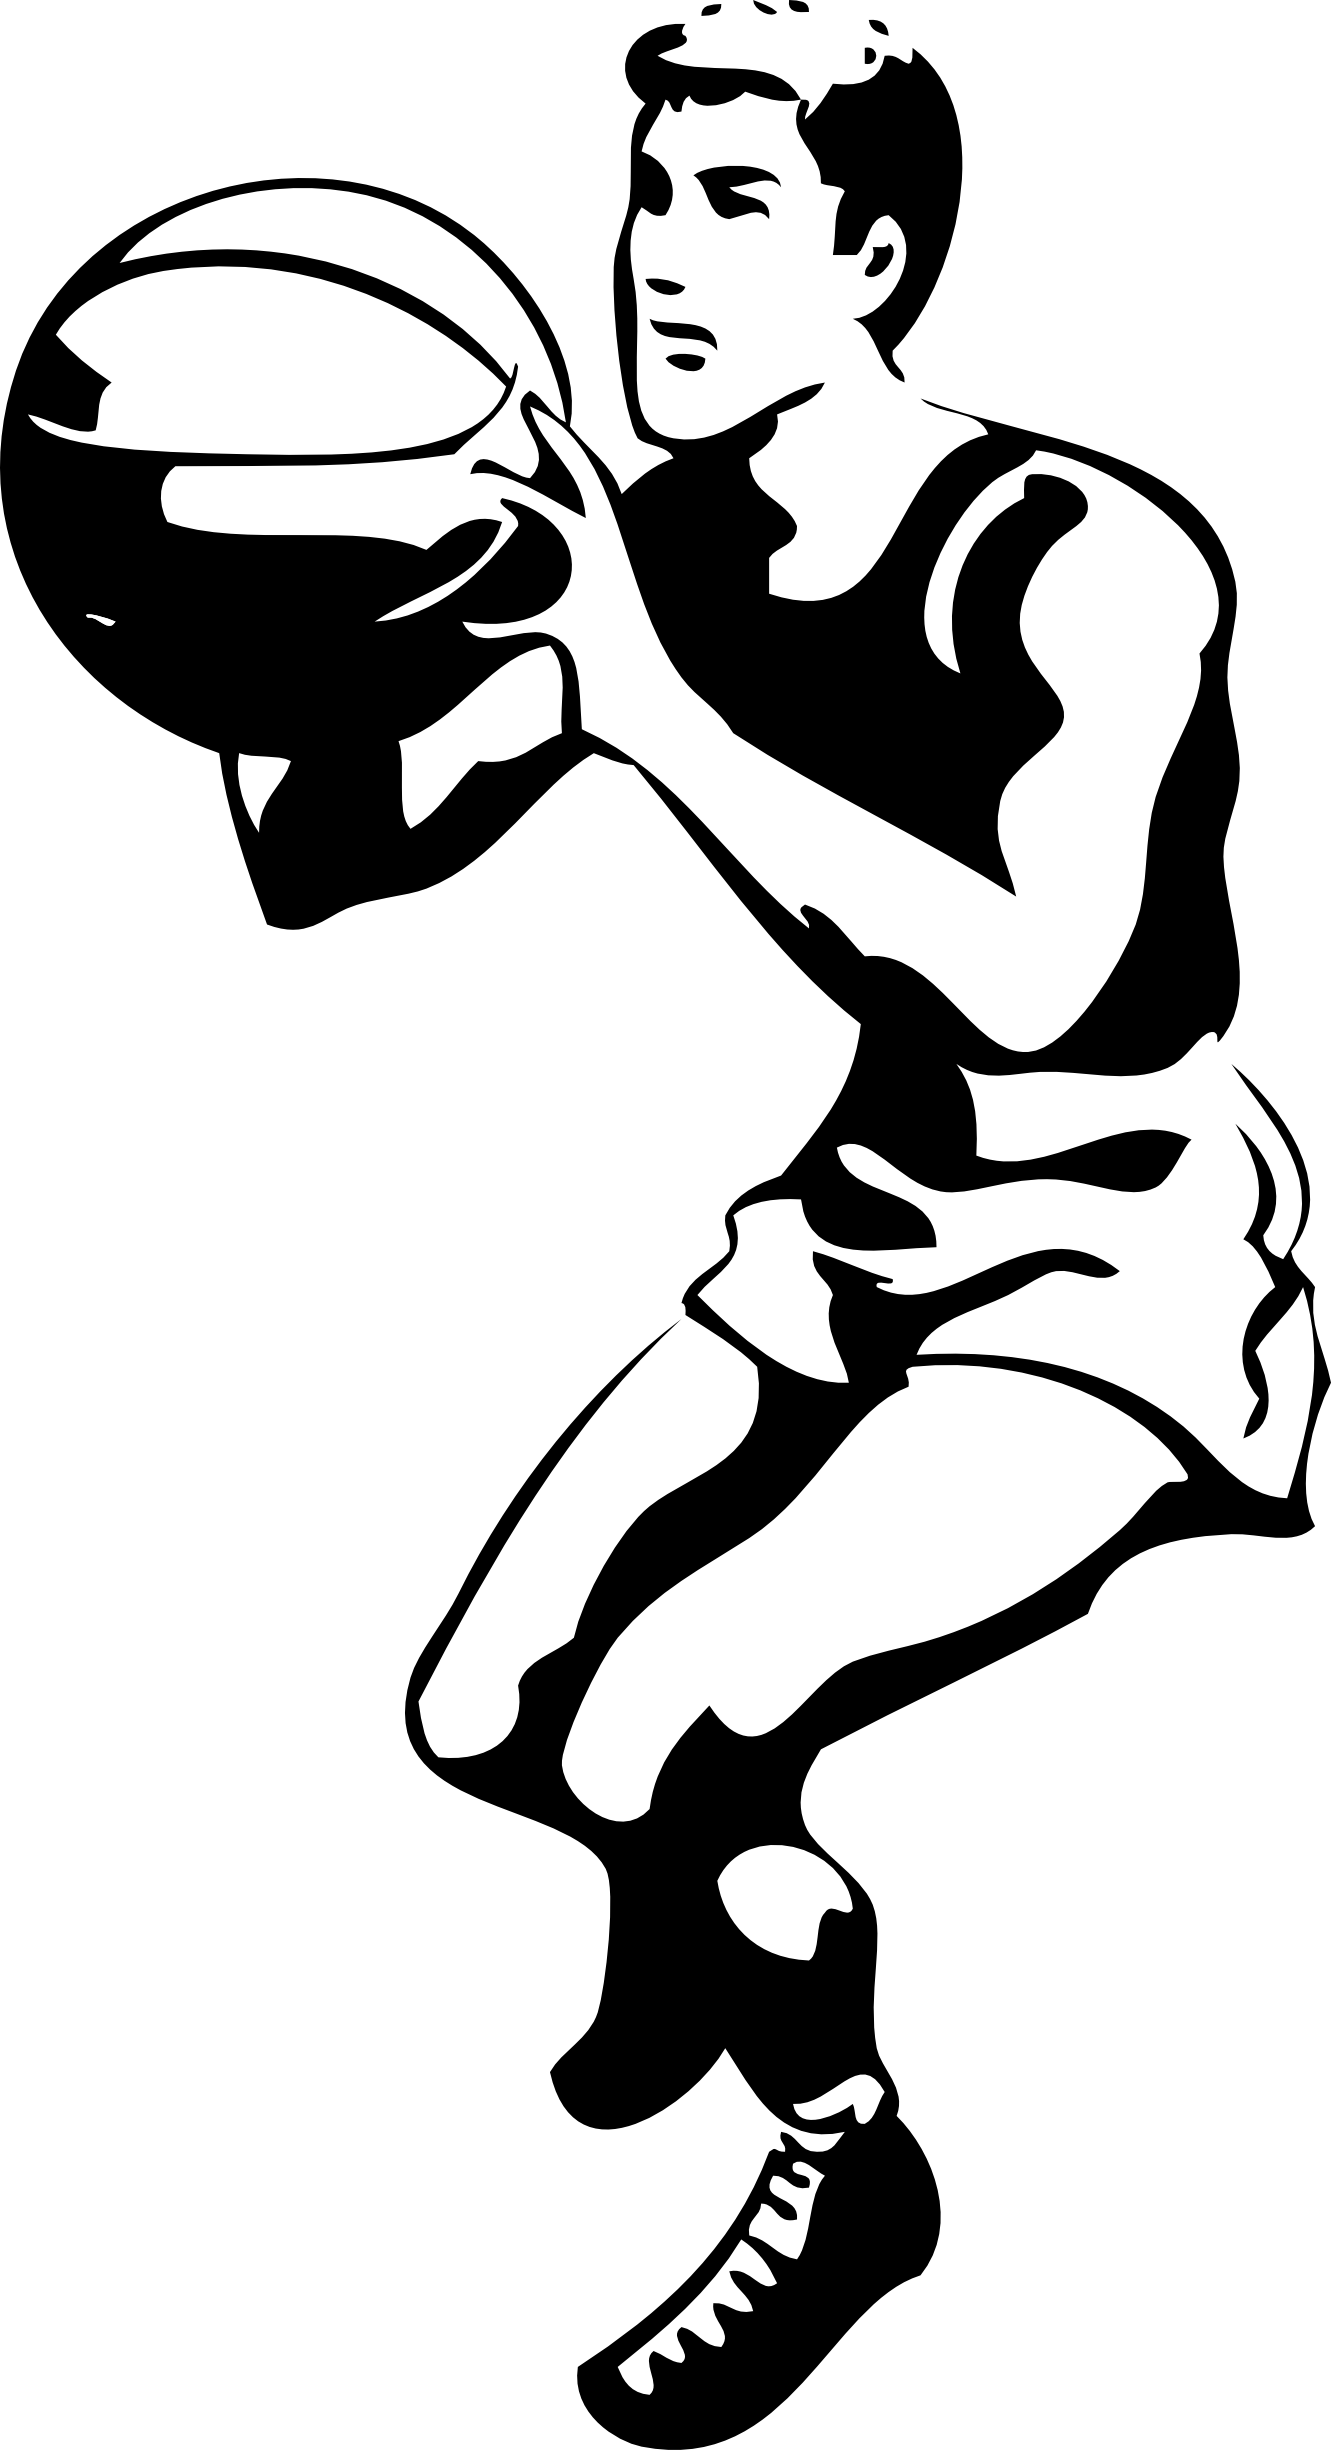 Basketball player black and white clipart png black and white Basketball Player Clipart Black And White | Clipart Panda - Free ... png black and white